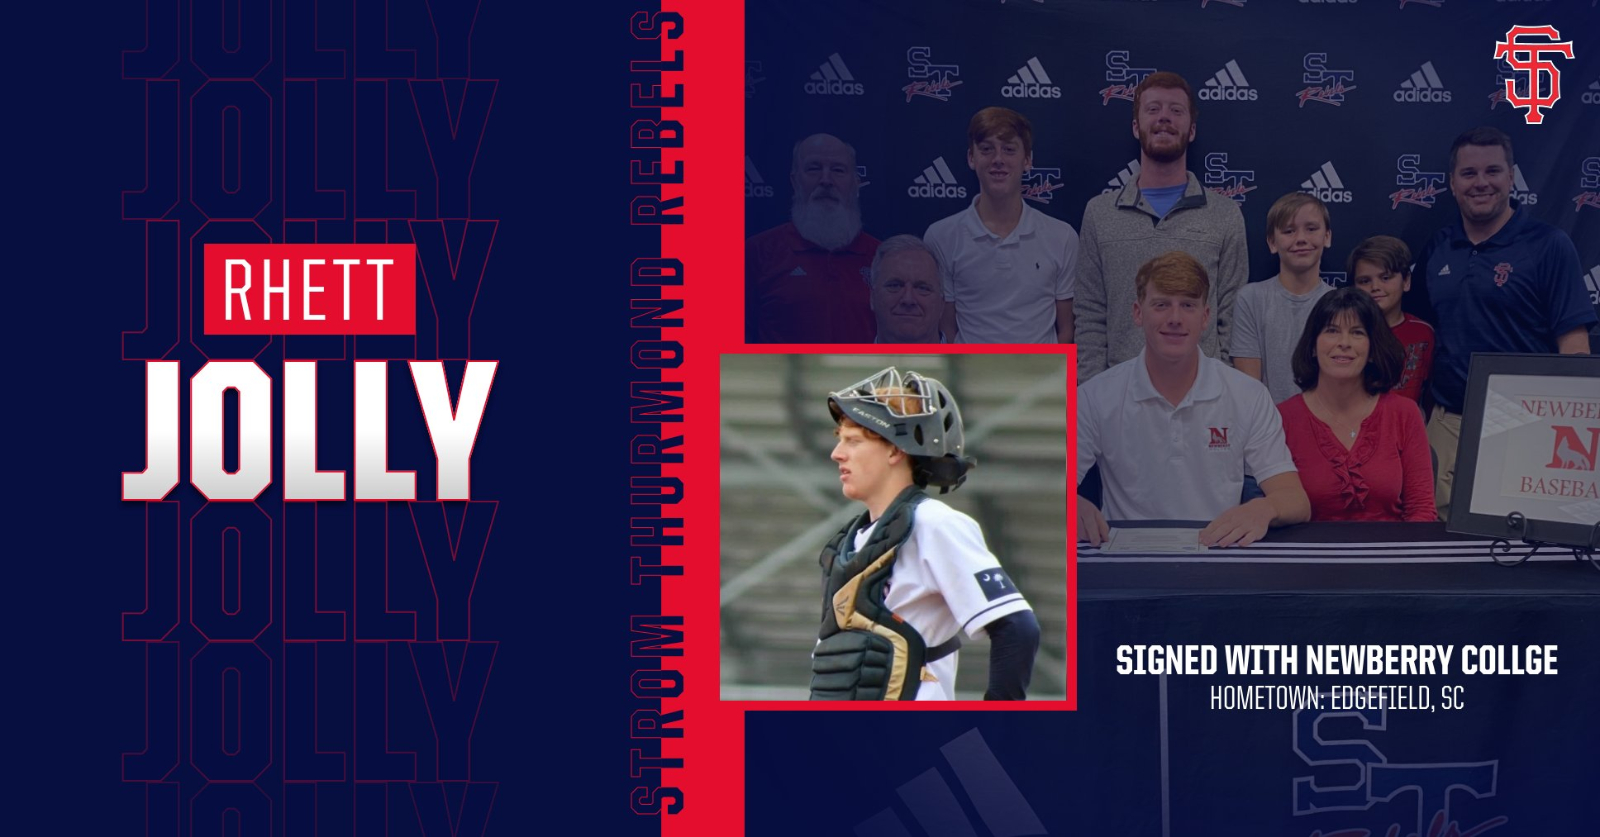 Jolly Signs with Newberry College